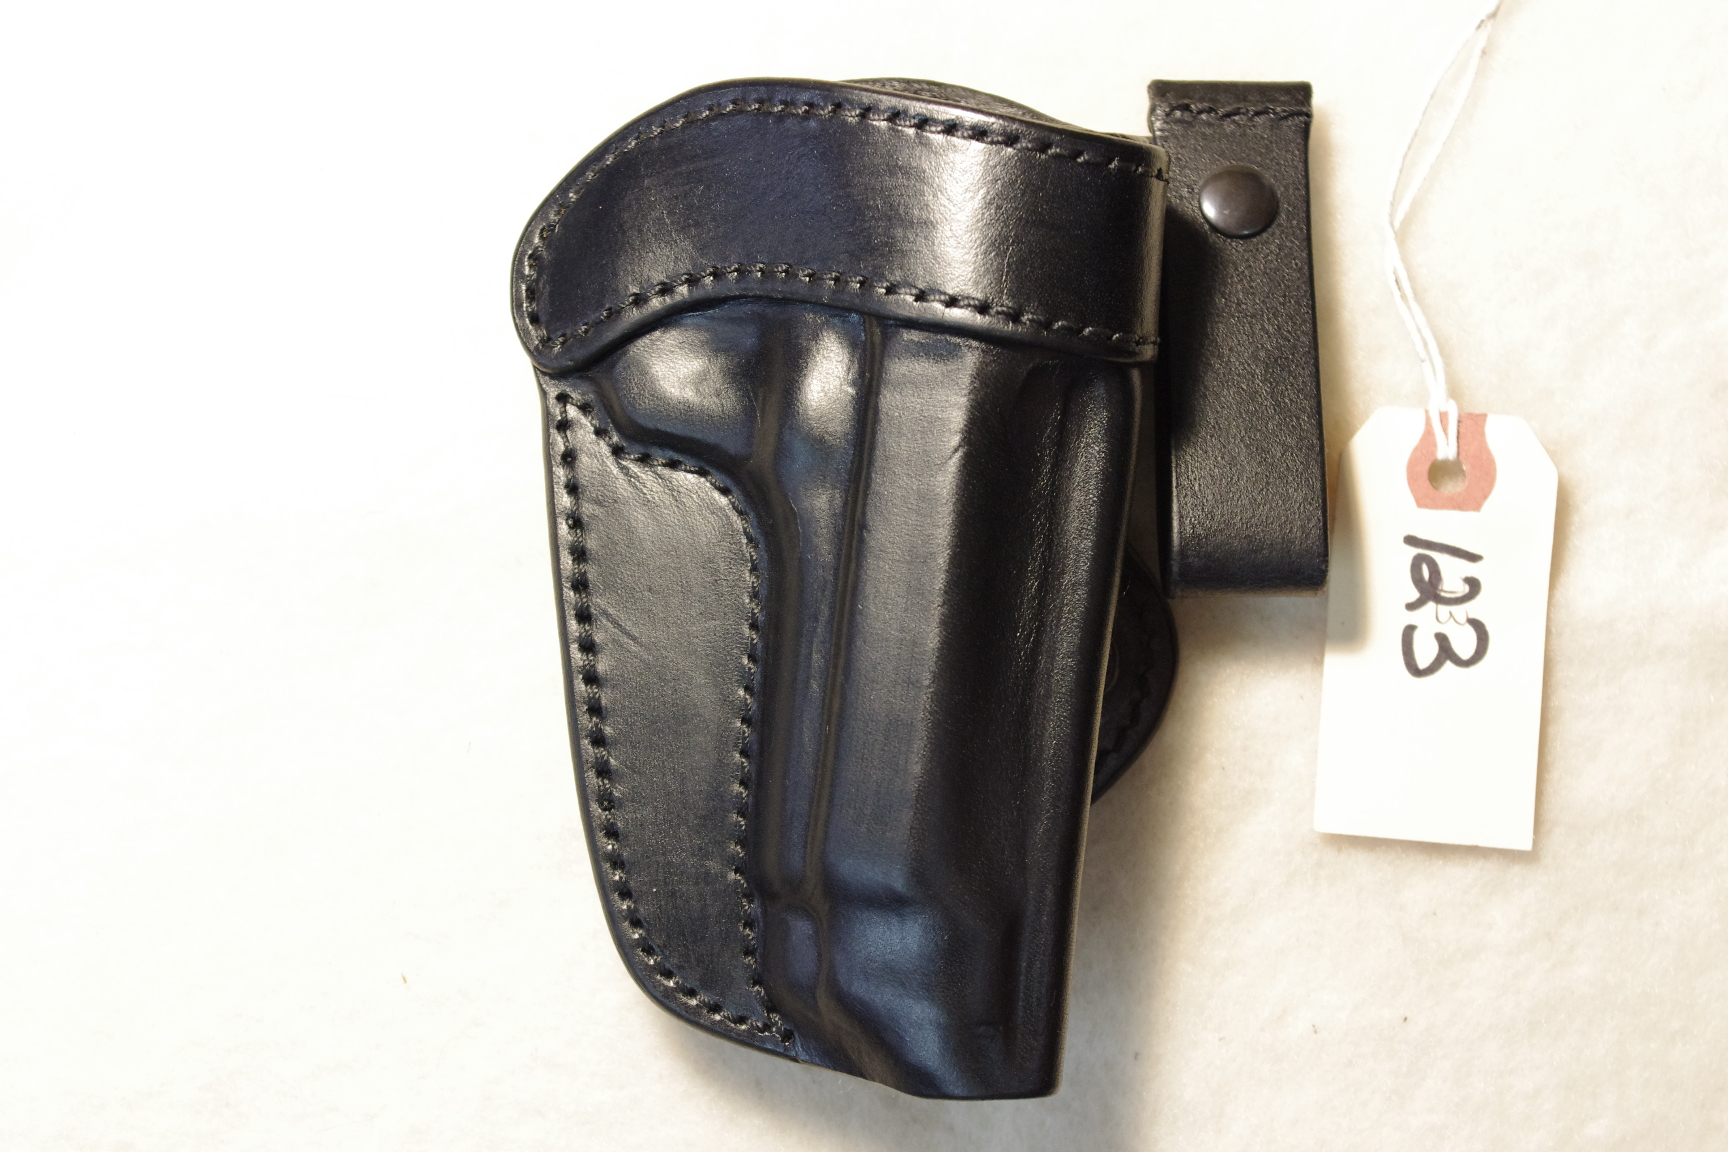 RH LEC Paddle Holster for Beretta 92fs (SOLD)